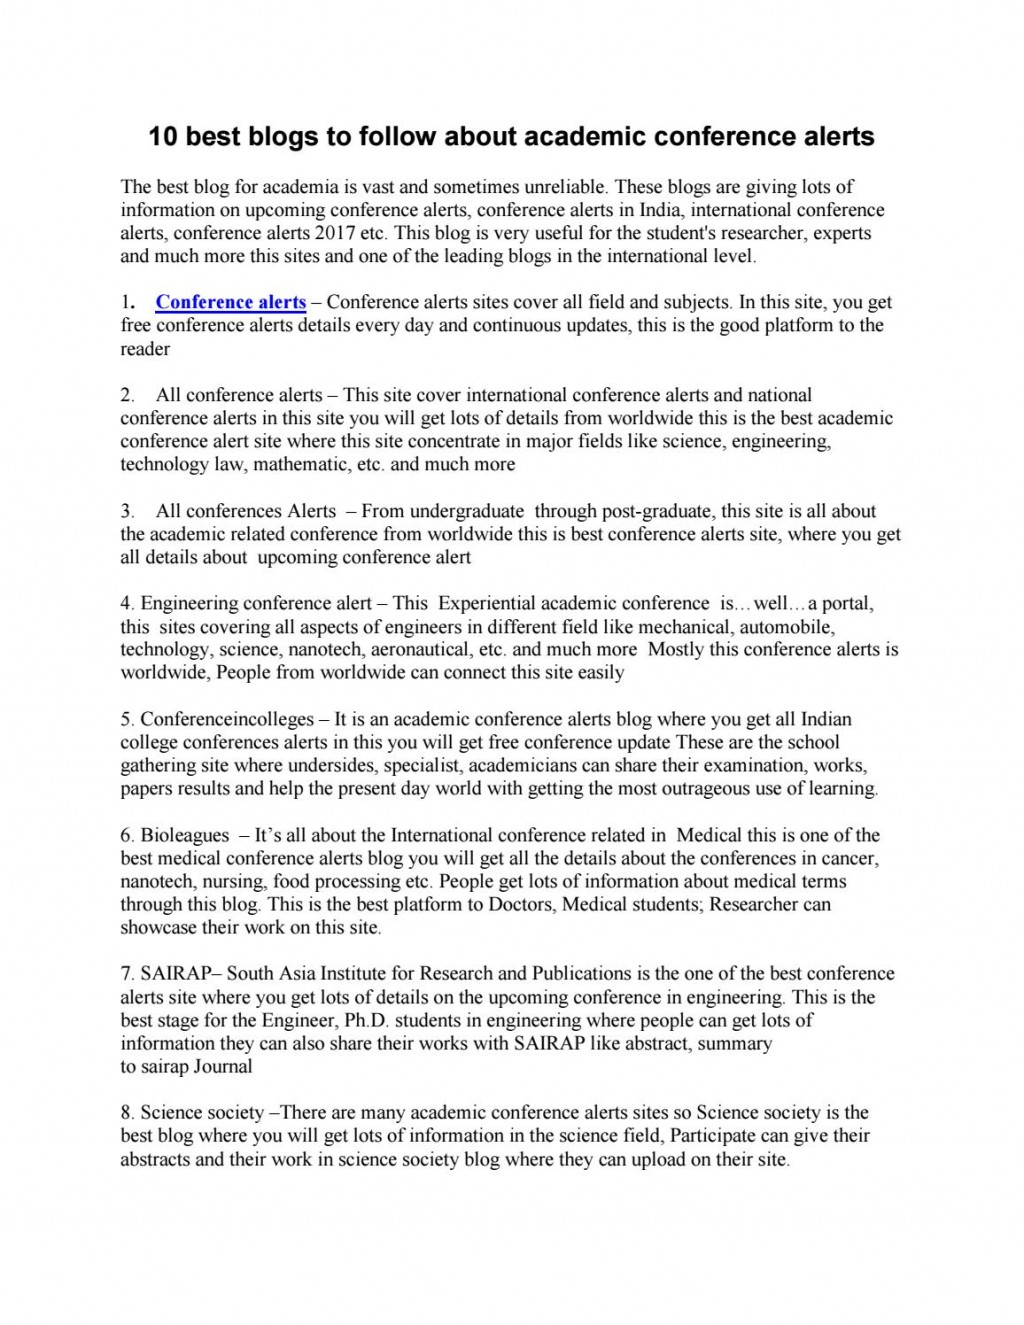 004 Page 1 Best Websites For Medical Researchs Surprising Research Papers Large